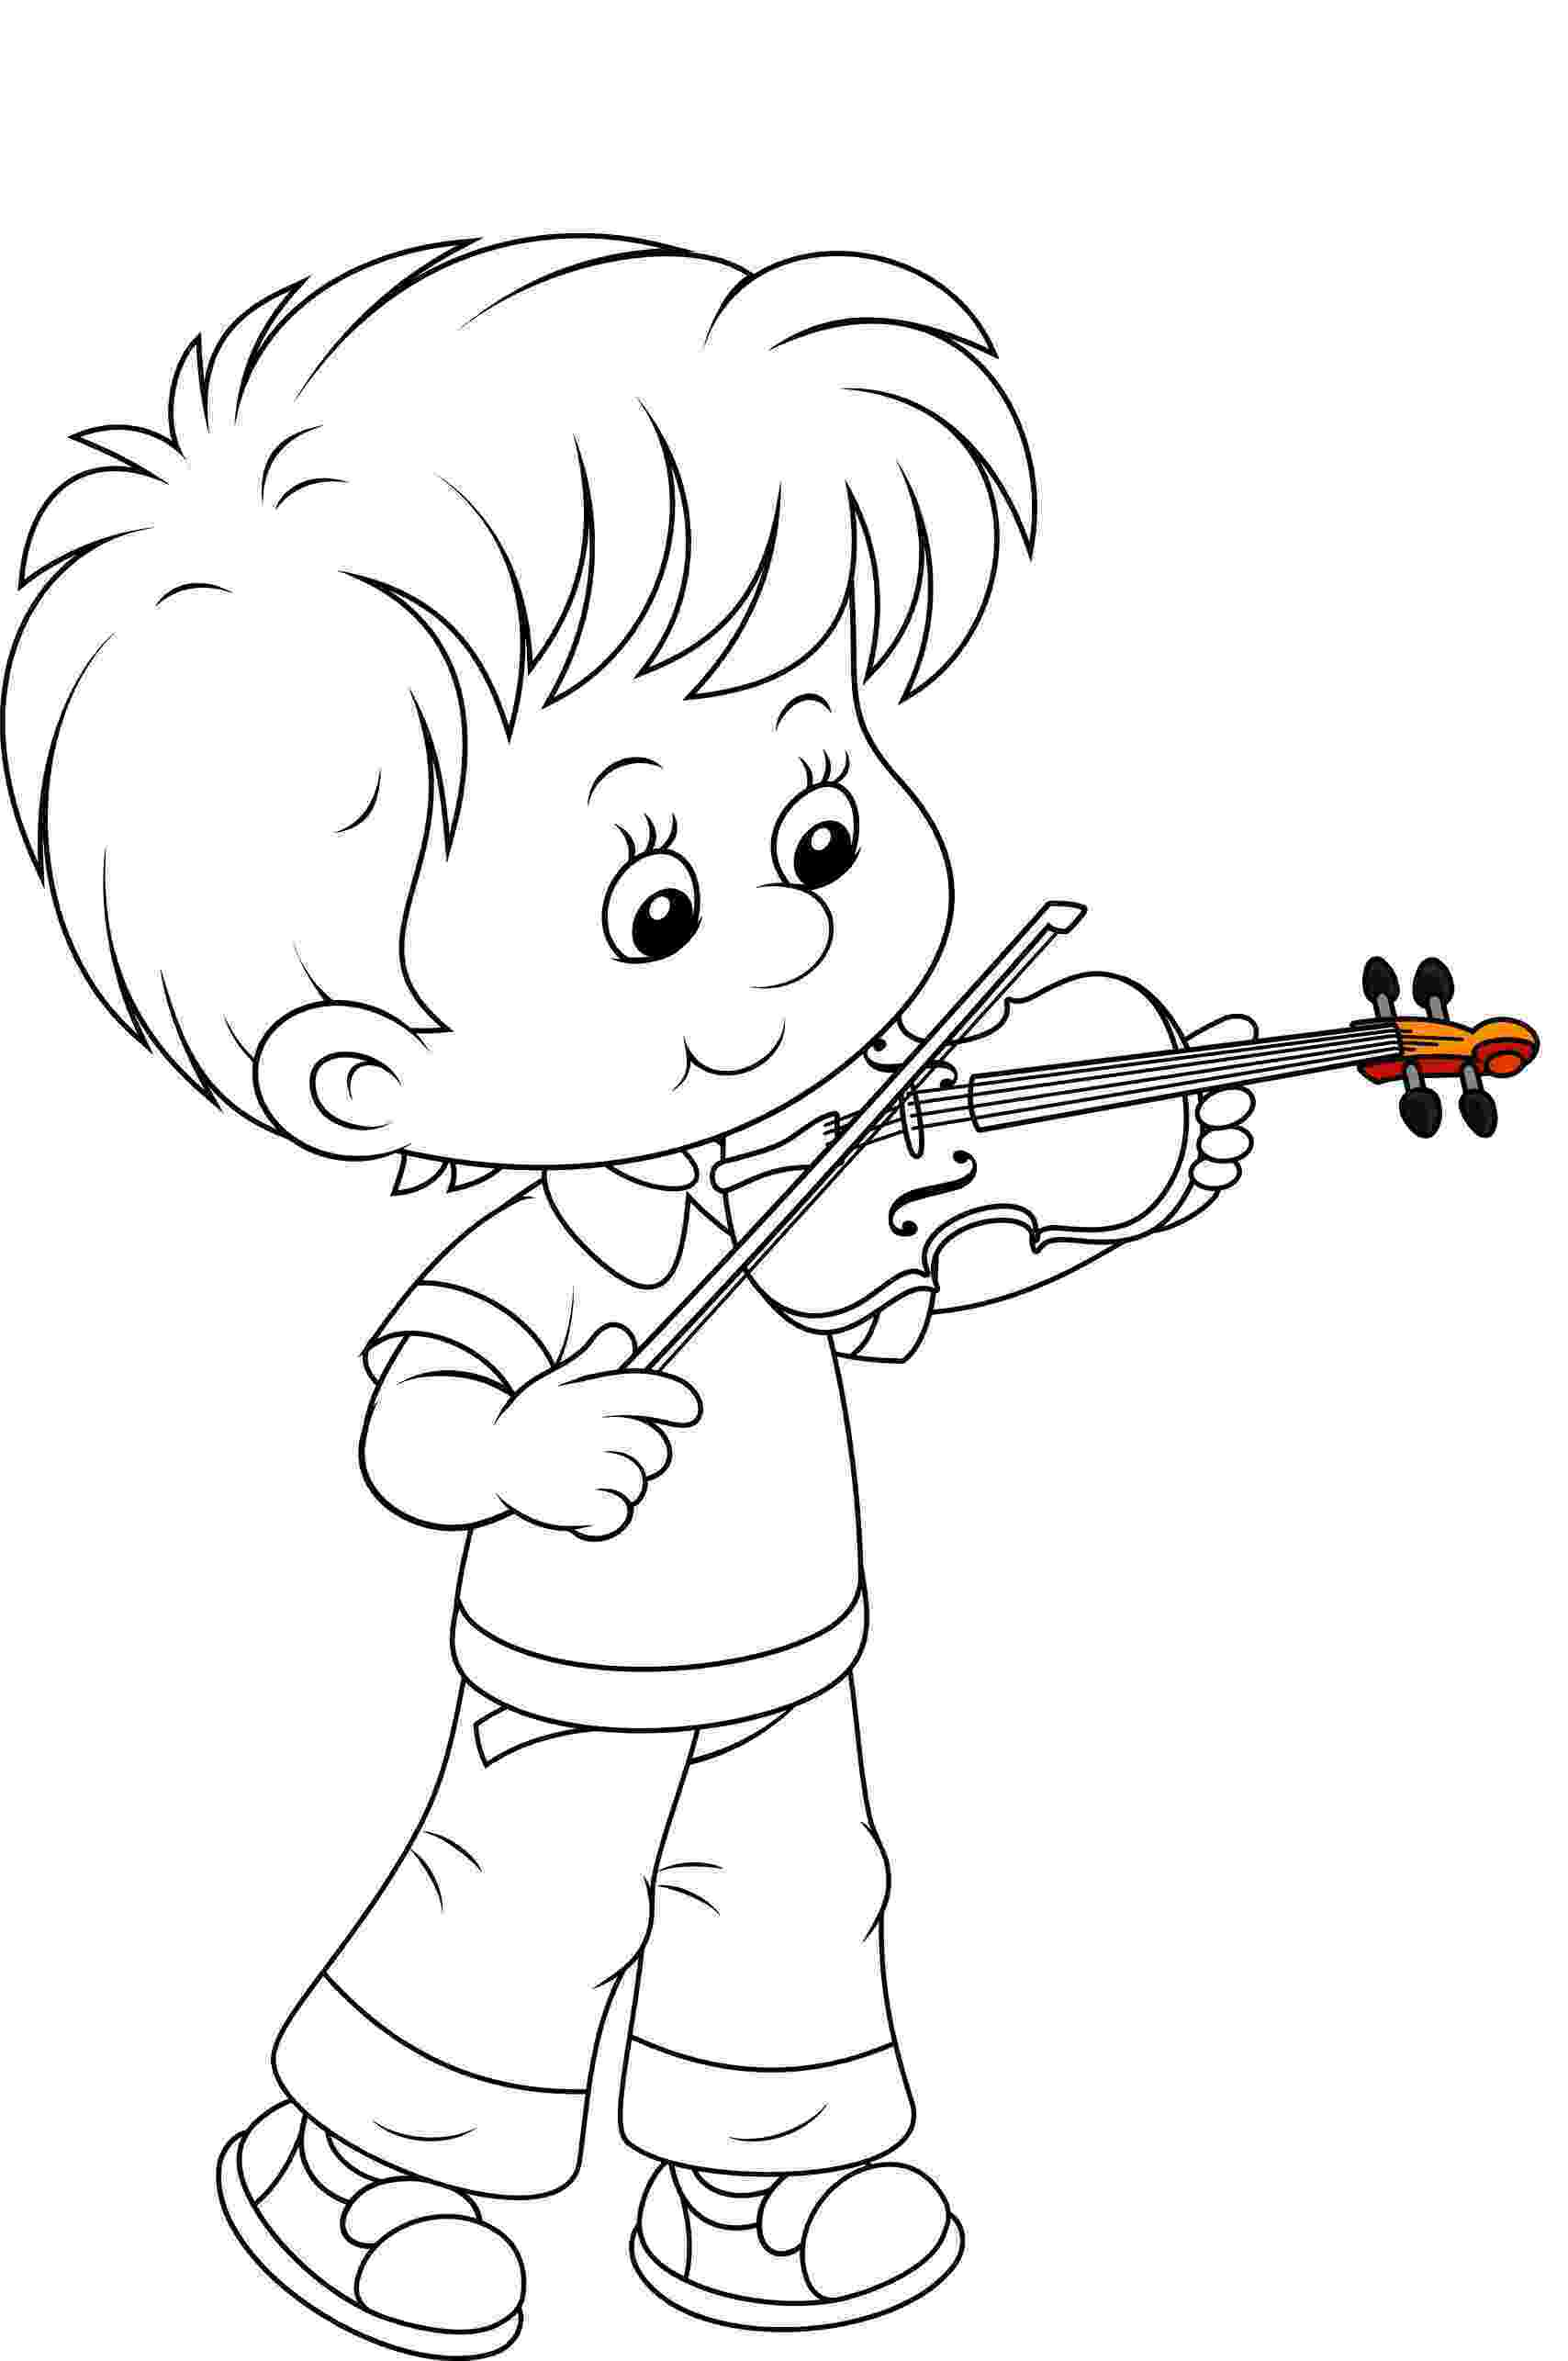 coloring pages of boys boy coloring pages to download and print for free of boys coloring pages 1 1